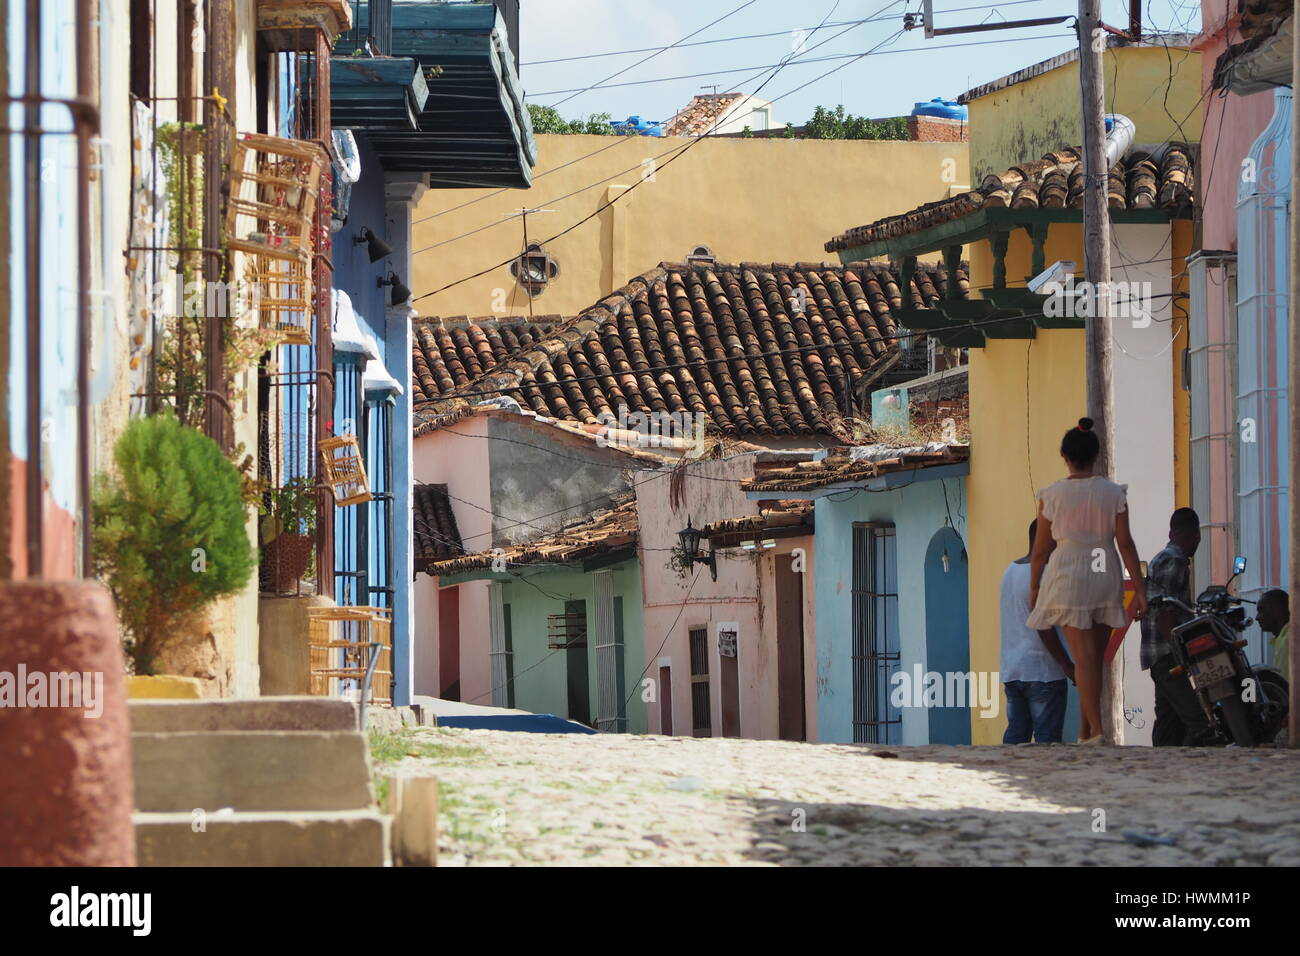 Cuban life, Trinidad, Cuba, Central America, West Indies - Stock Image